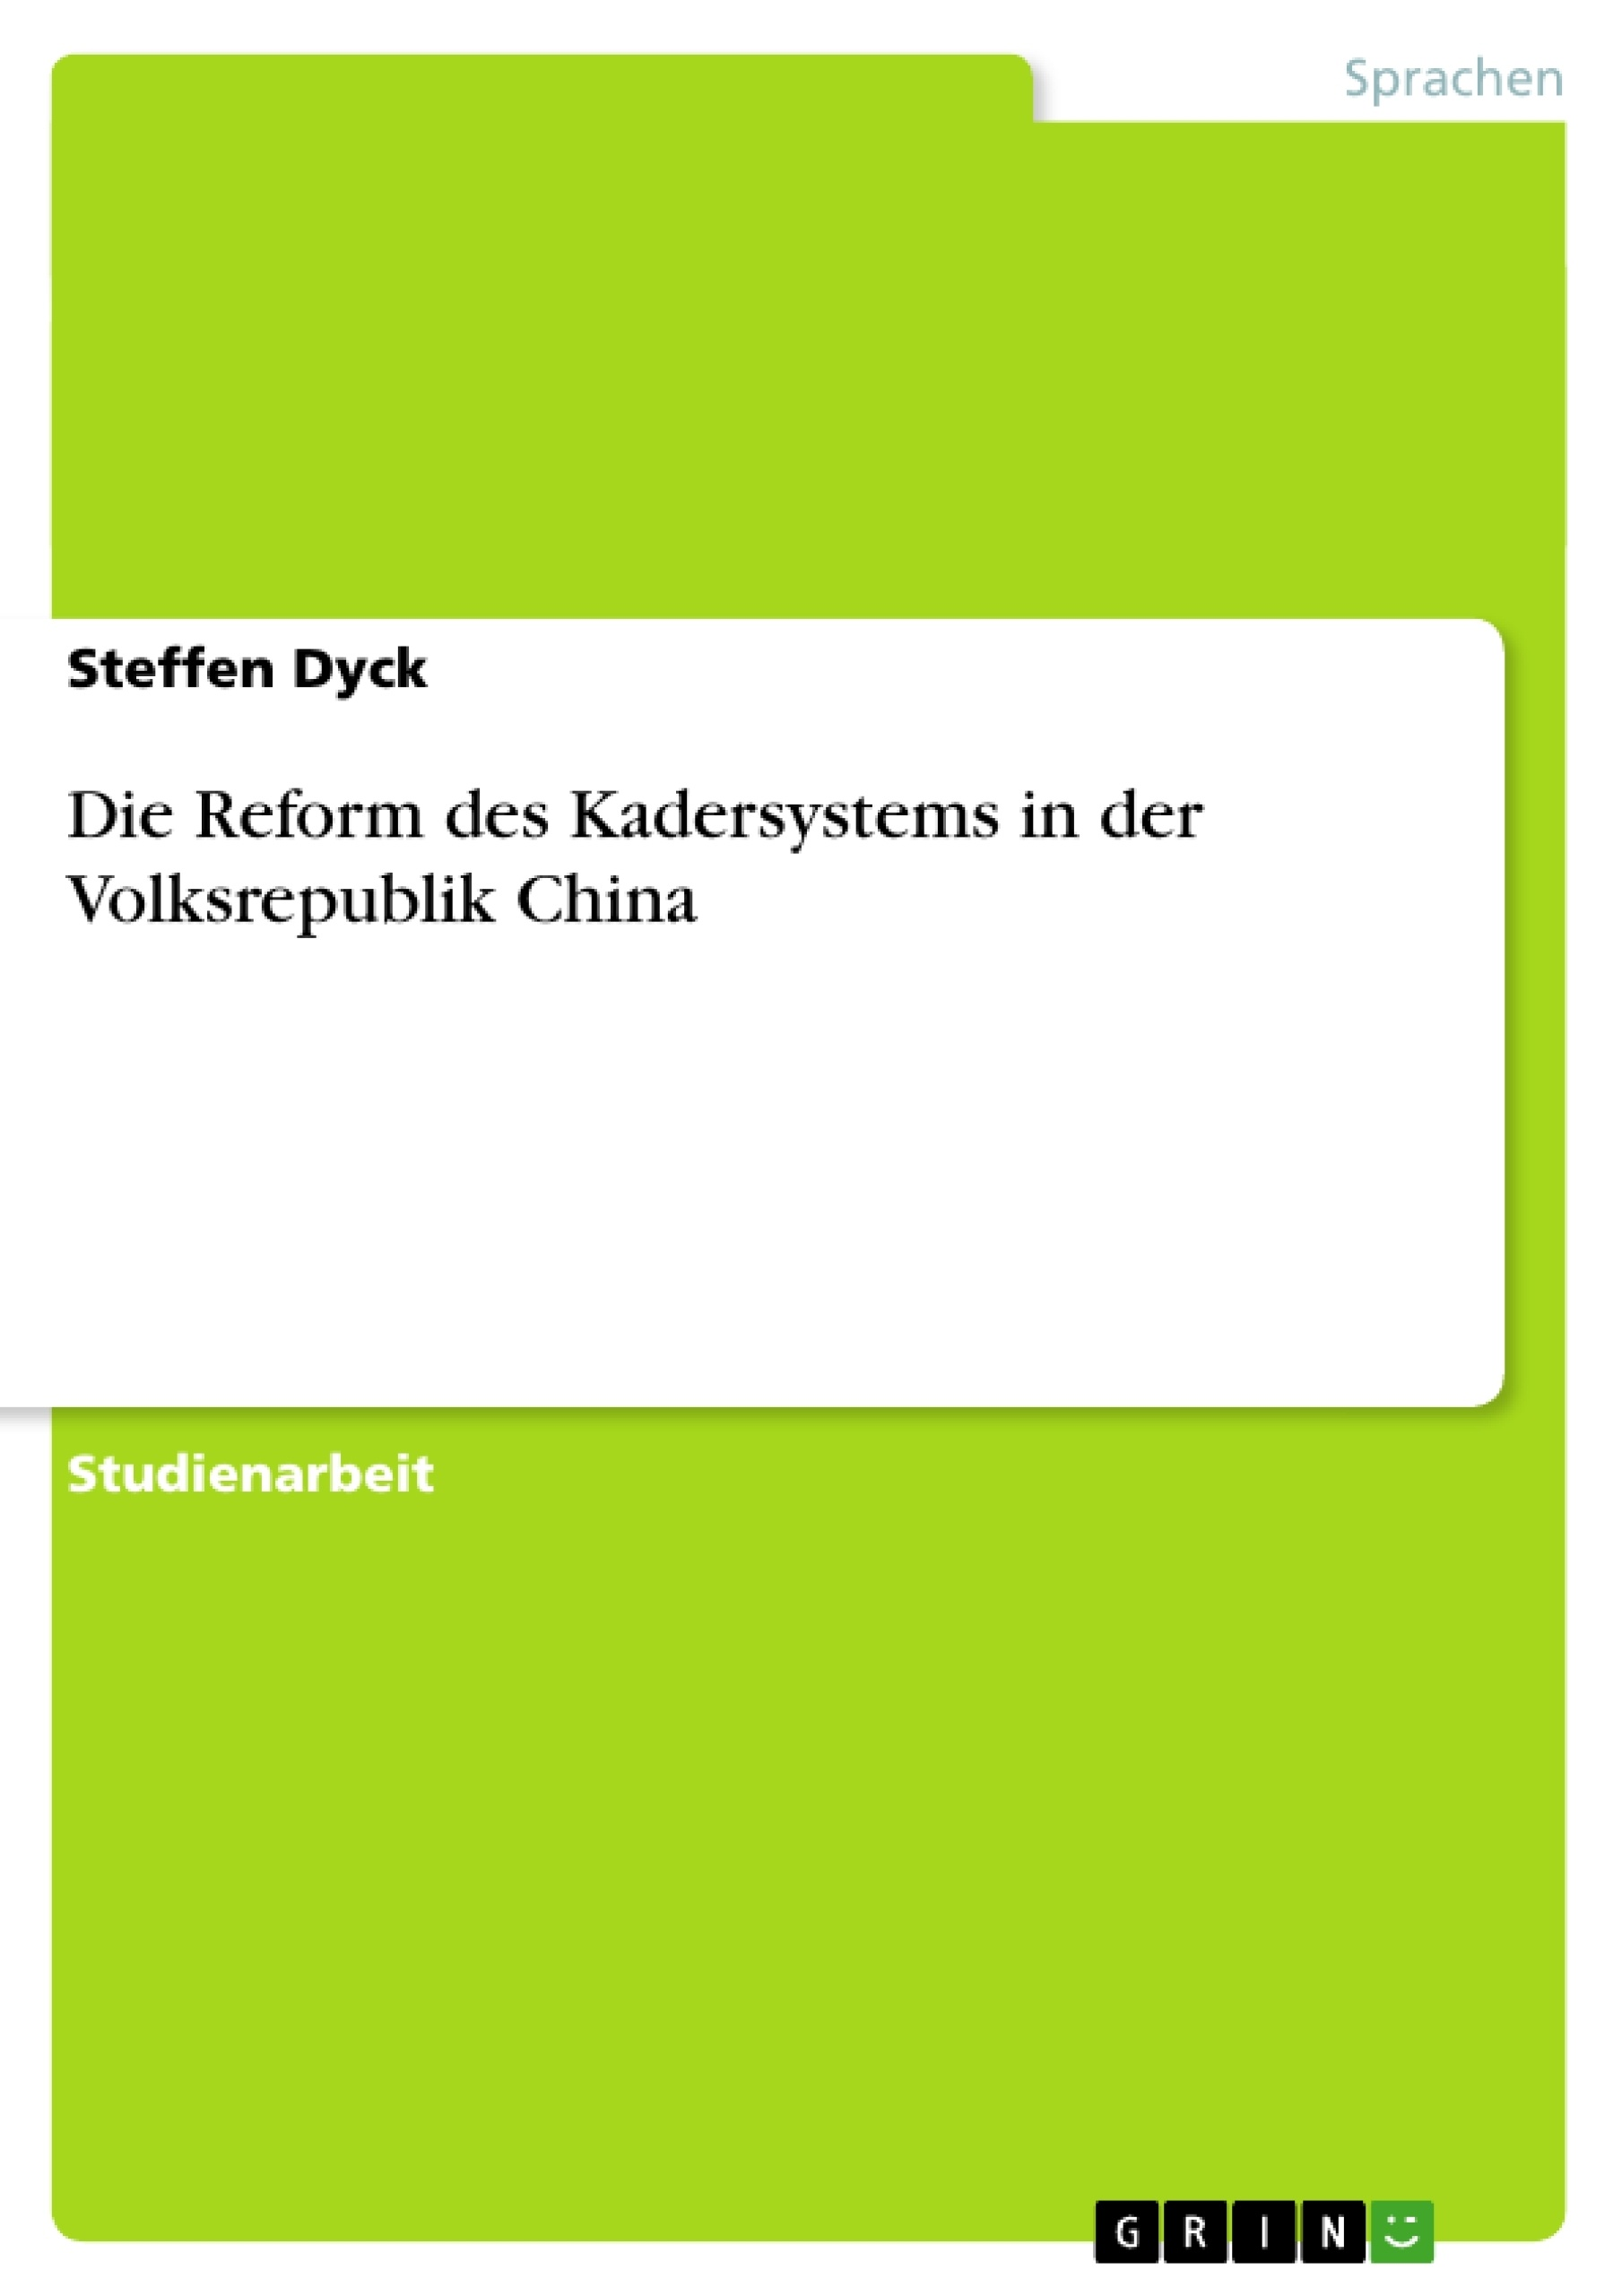 Titel: Die Reform des Kadersystems in der Volksrepublik China